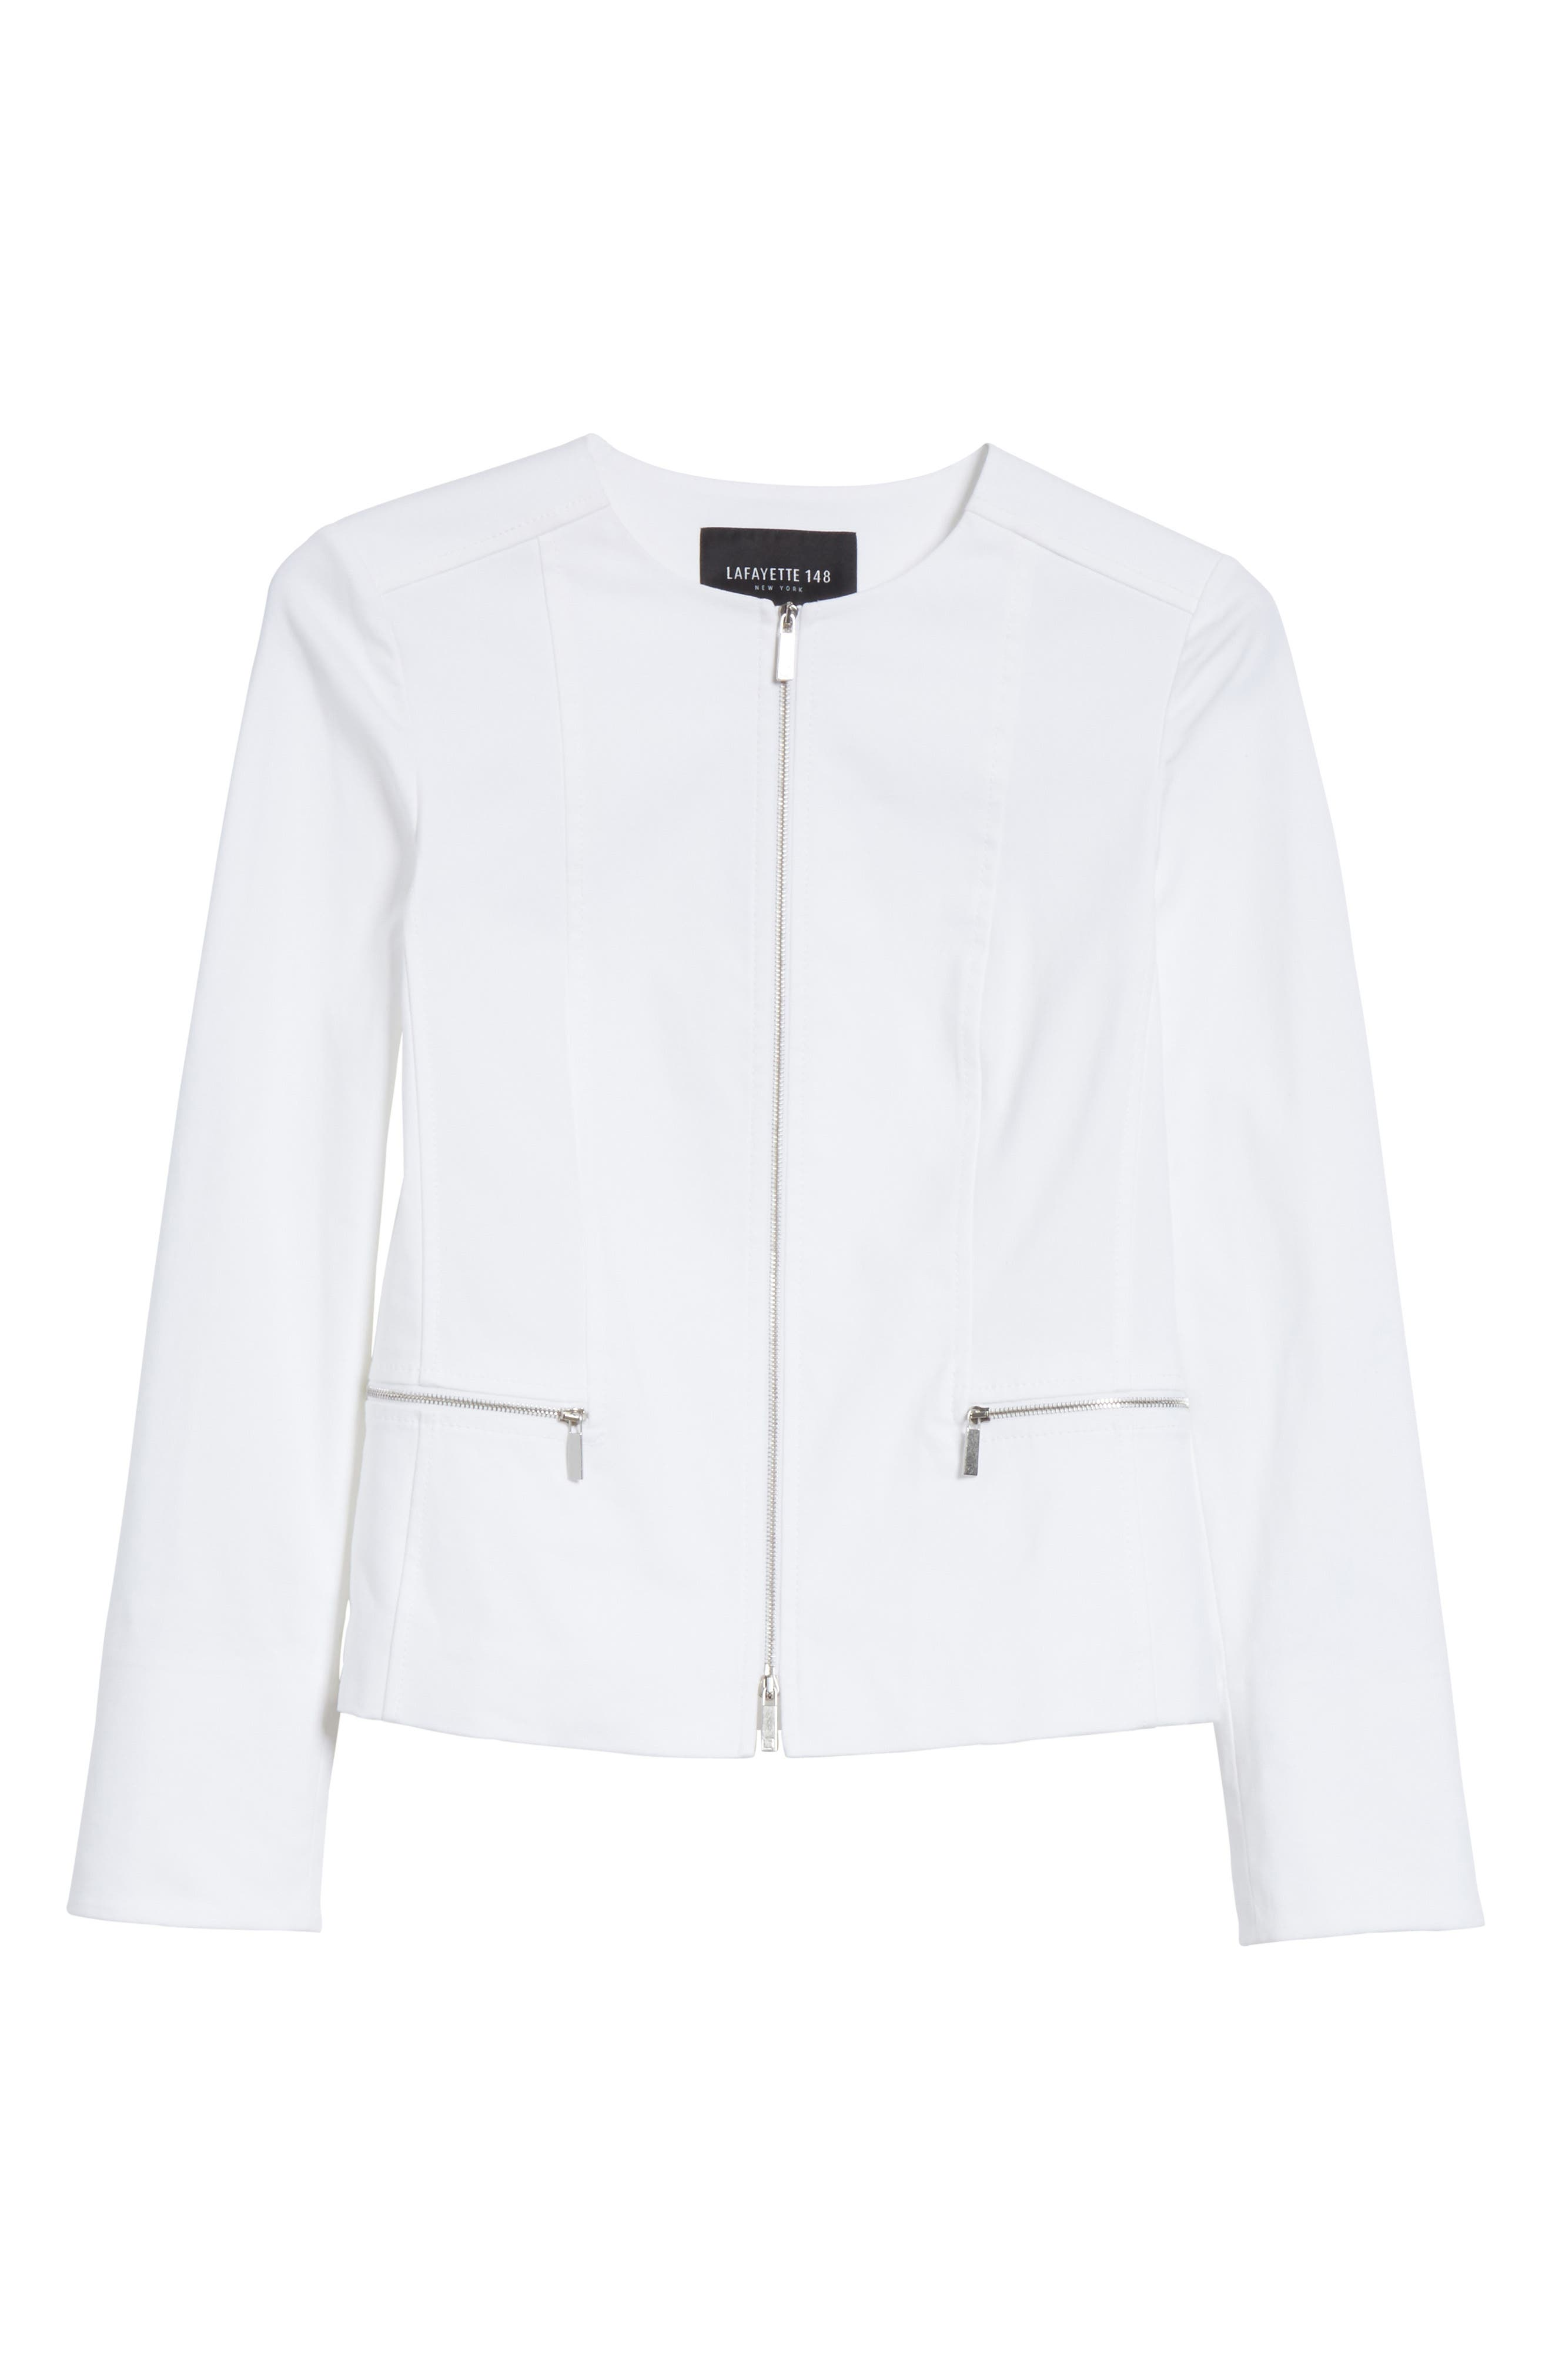 Noelle Catalina Stretch Jacket,                             Alternate thumbnail 6, color,                             White